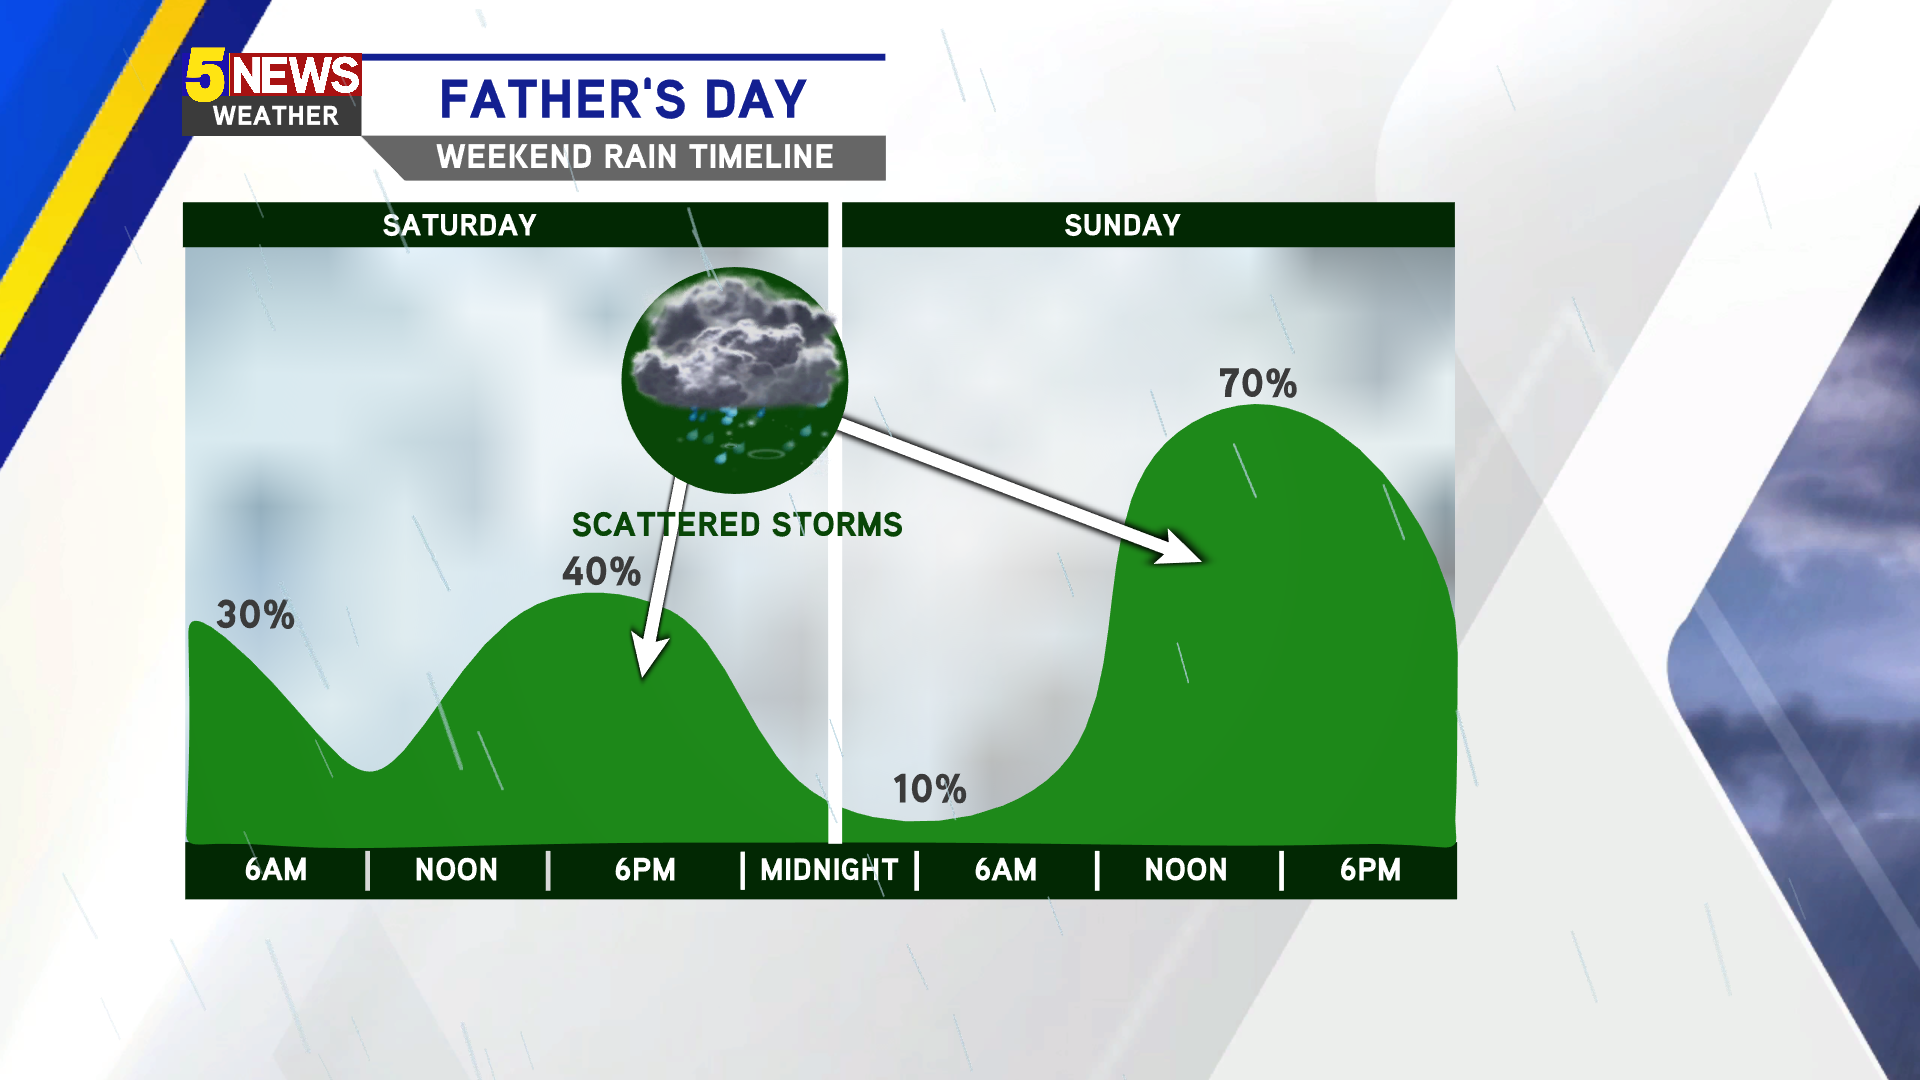 Father's Day Weekend: Scattered Storms thumbnail